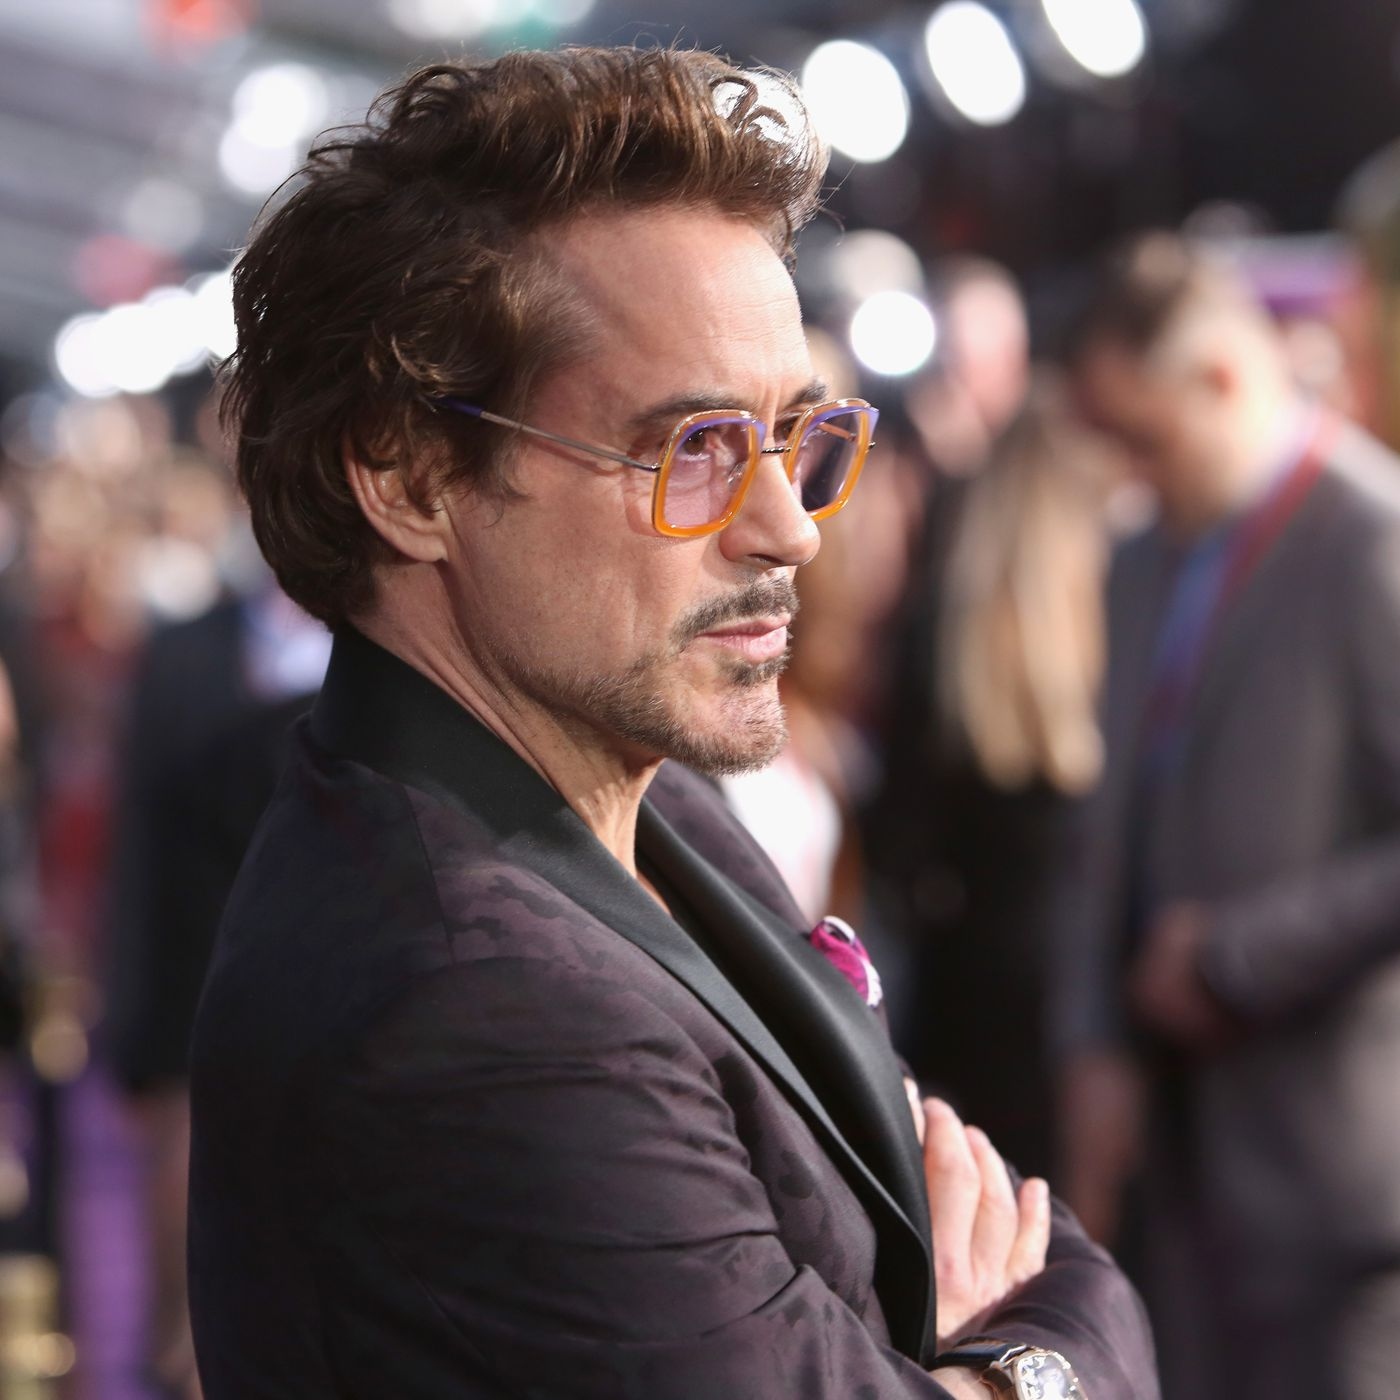 40501f045 Robert Downey Jr. is making a YouTube Red series about artificial  intelligence - The Verge